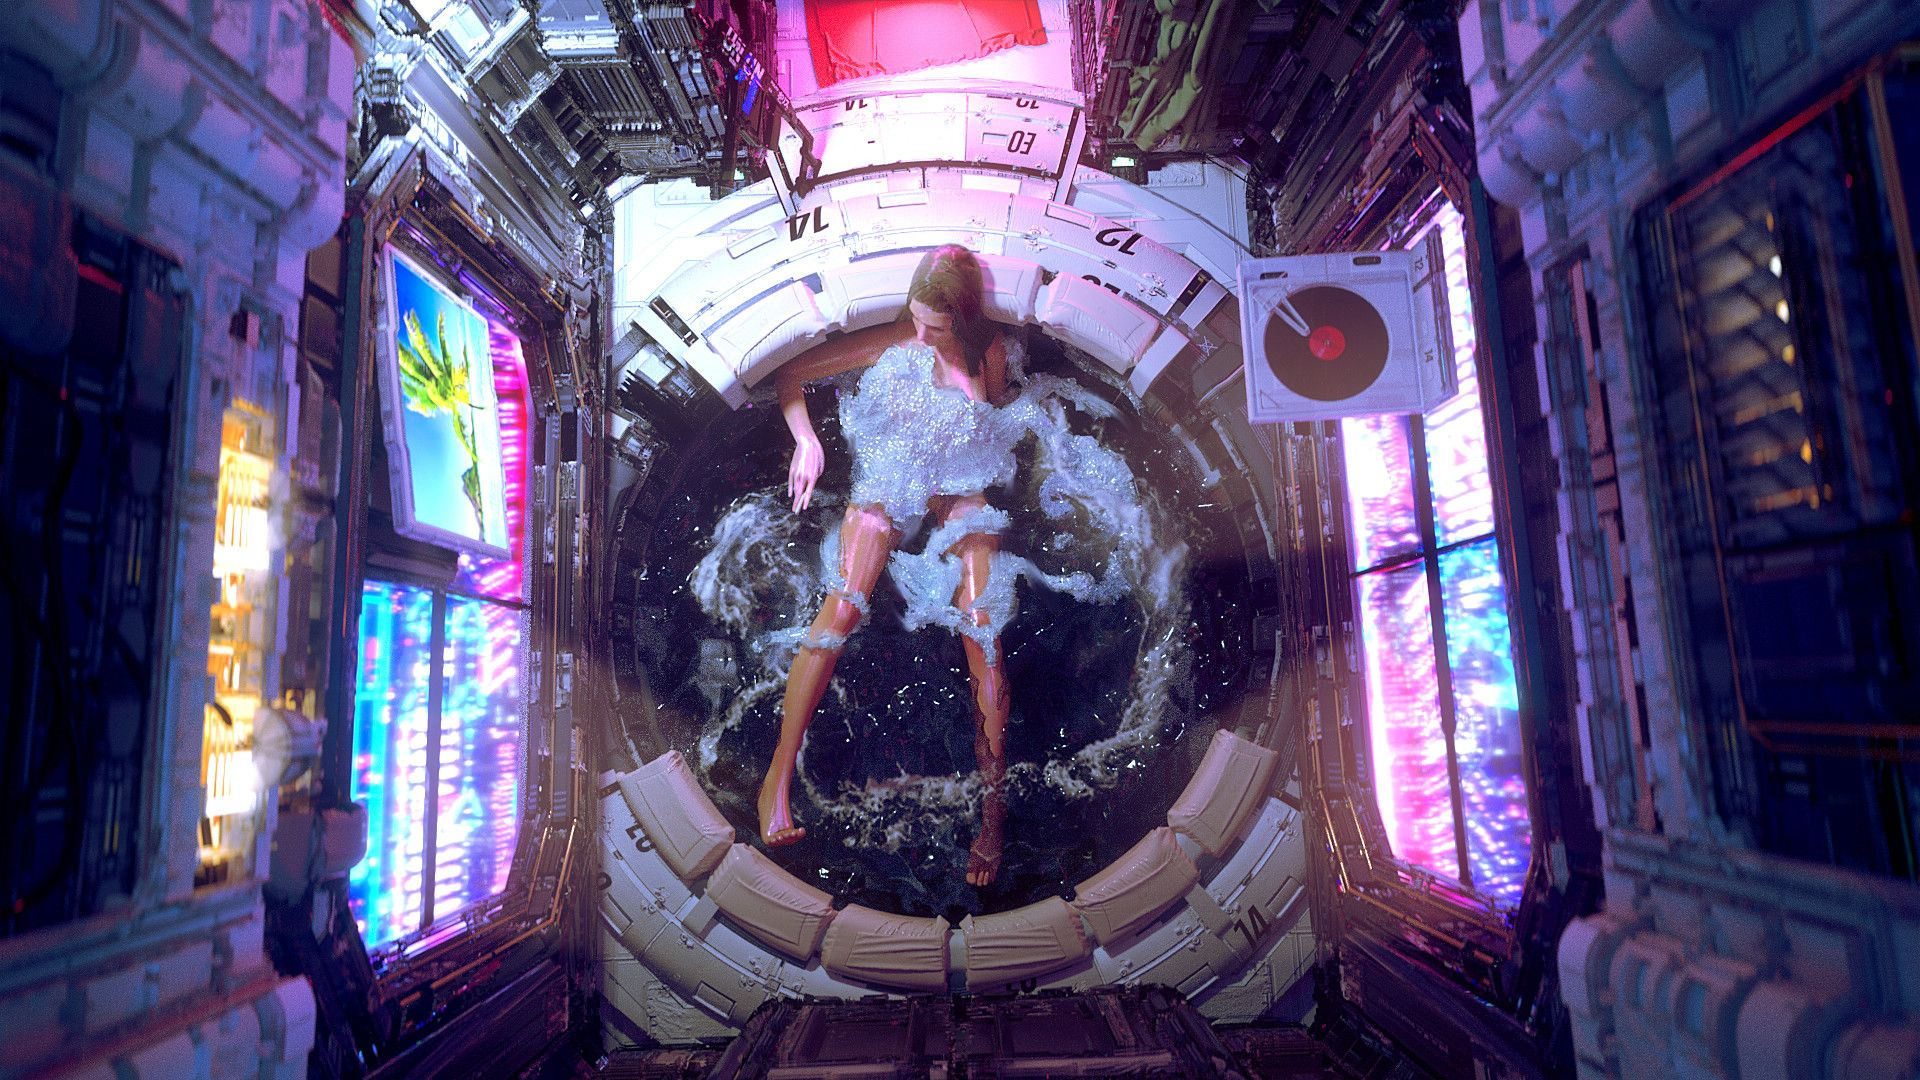 """One of These Nights by Federico Pelat """"Inspired by Klaus wittmanns very cool illustration, Bath 2077."""""""